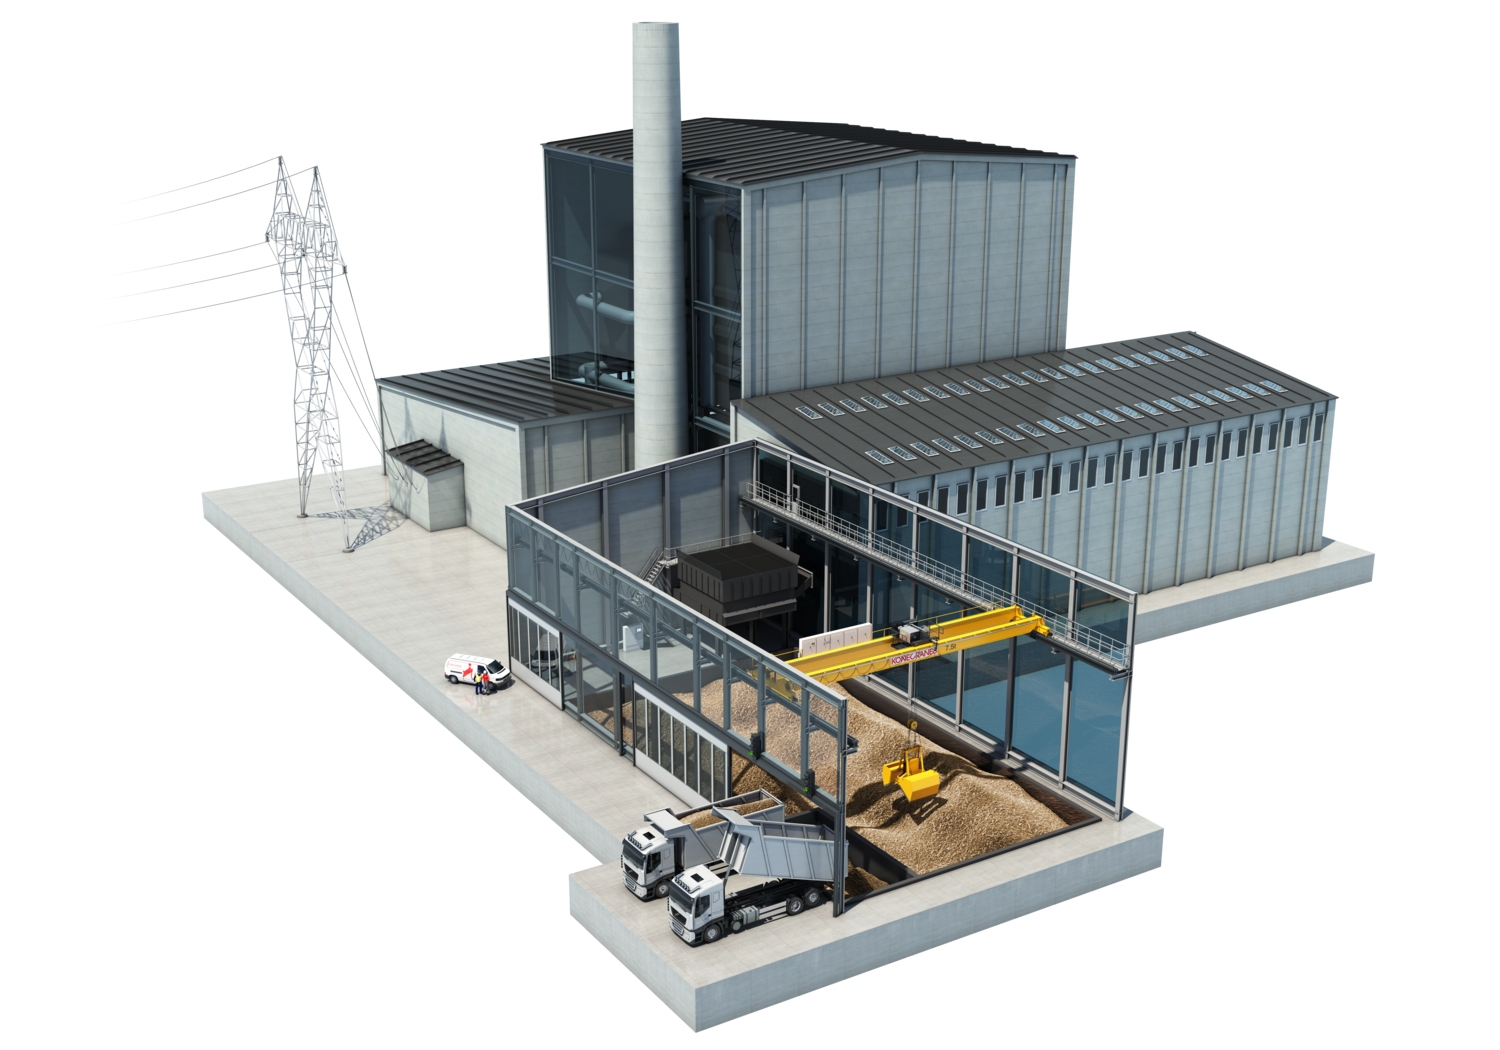 Biomass plant layout